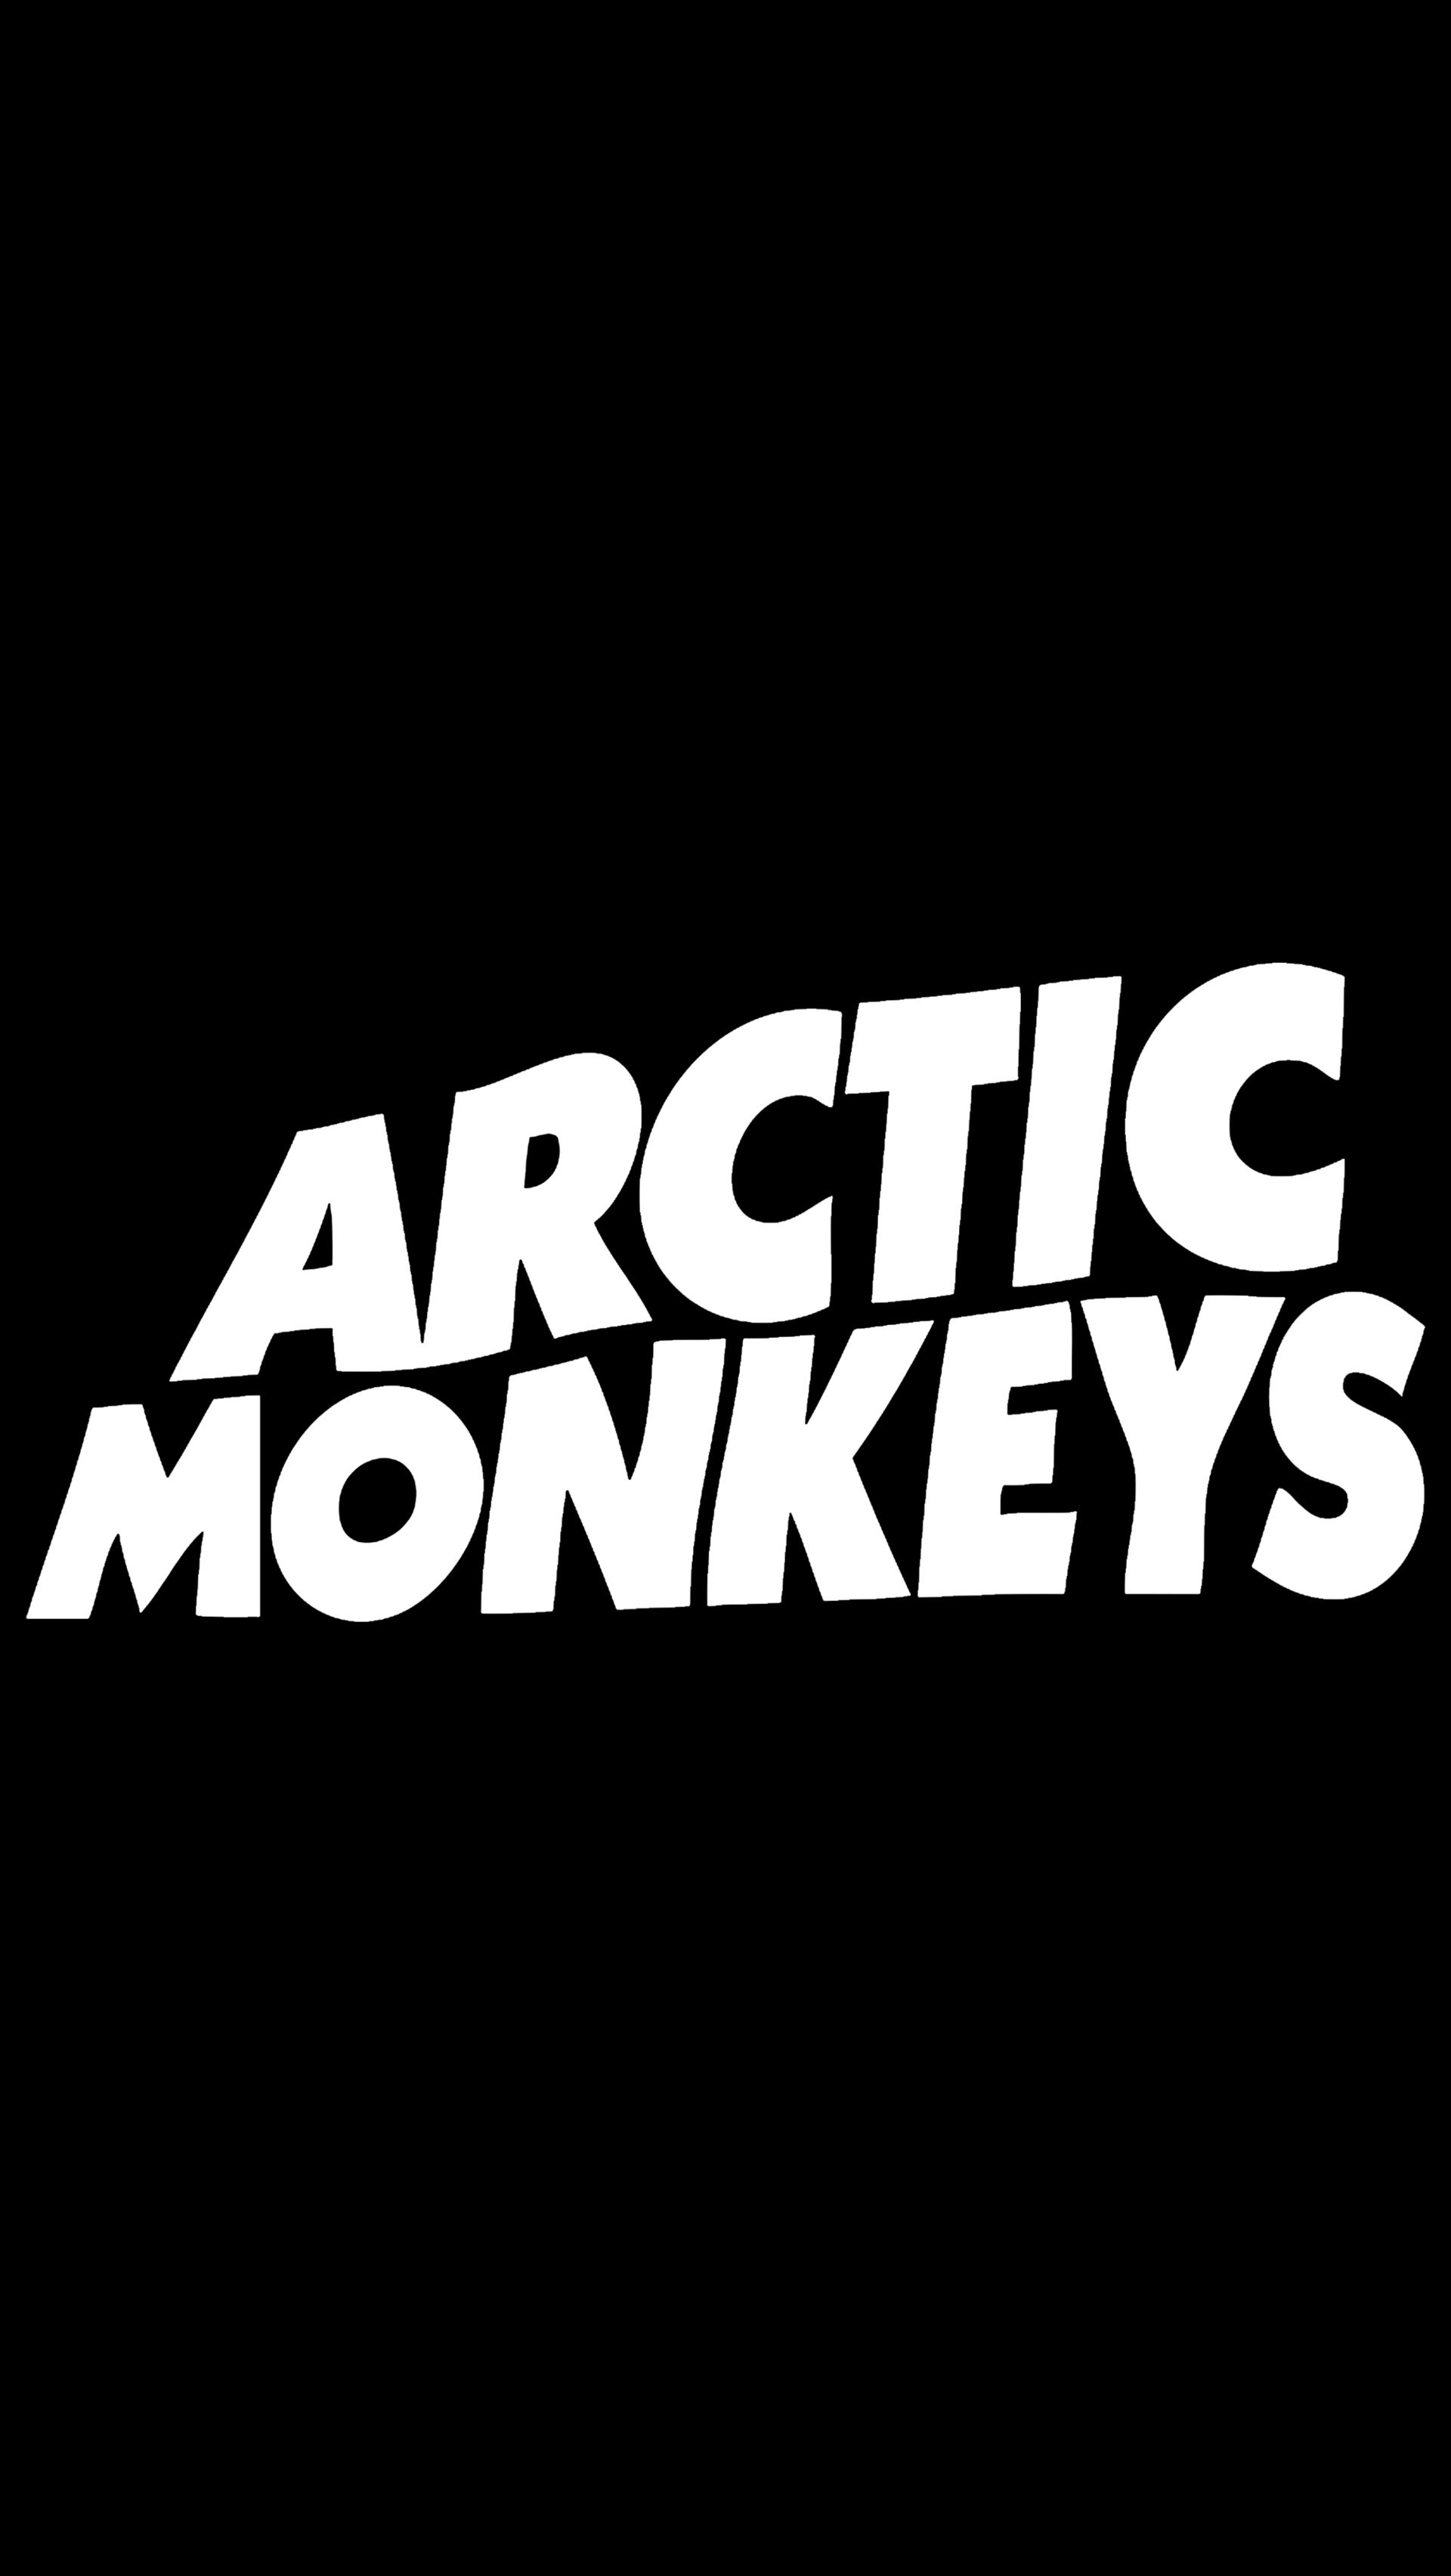 arctic monkeys iphone wallpaper - wallpapersafari | adorable